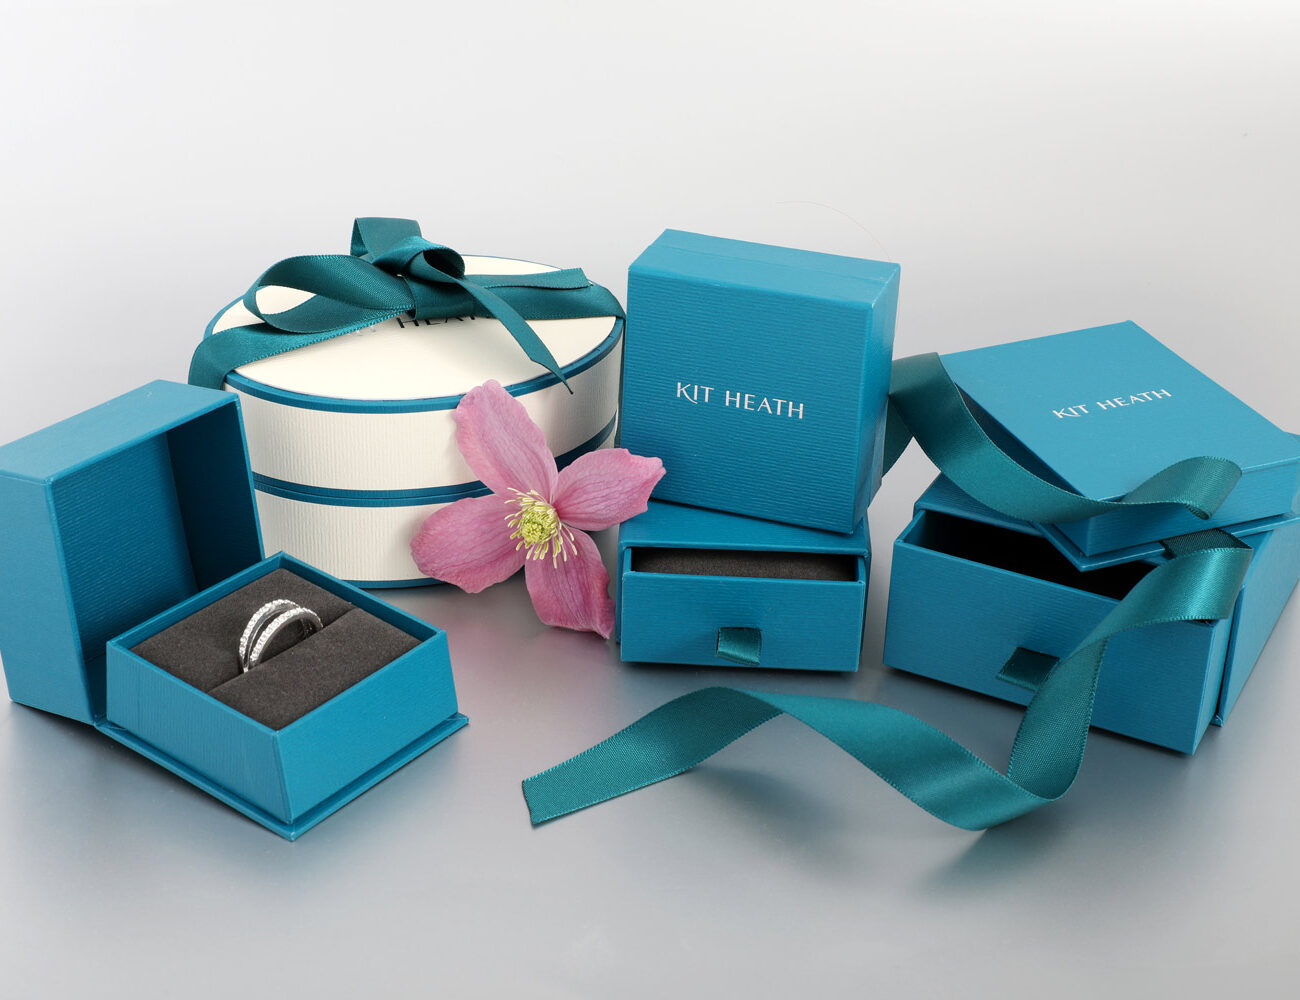 Kit Heath Jewellery Packaging with Ribbons